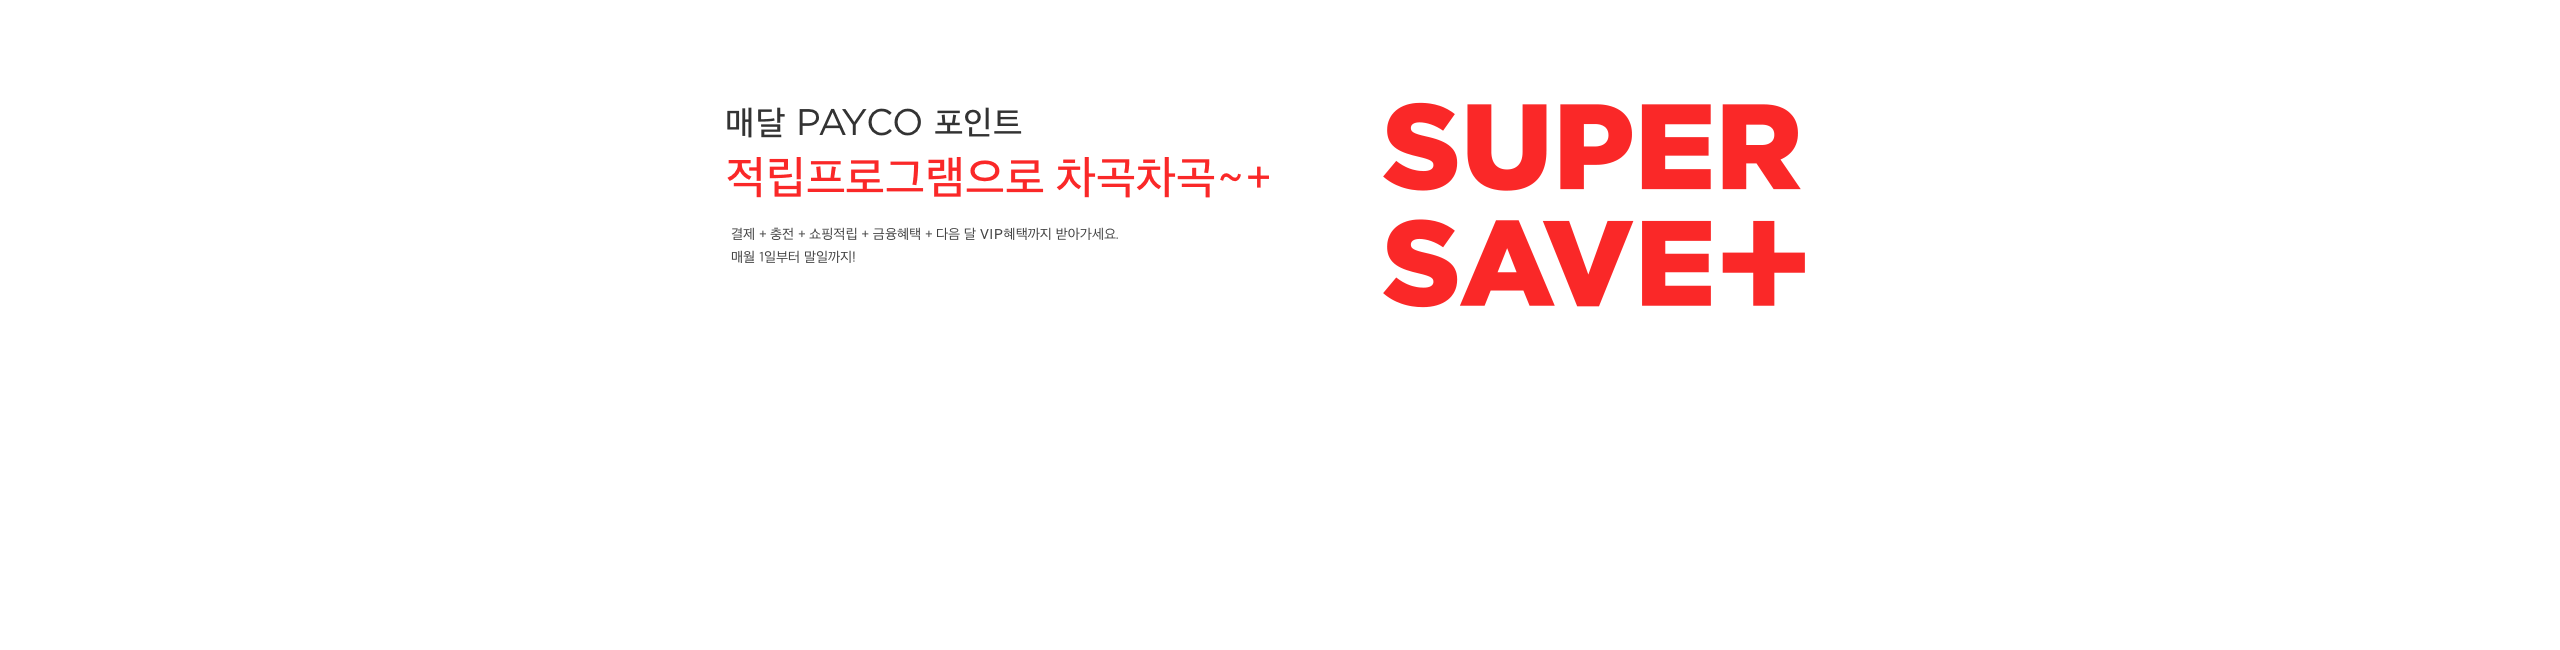 7월 PAYCO SUPER SAVE+